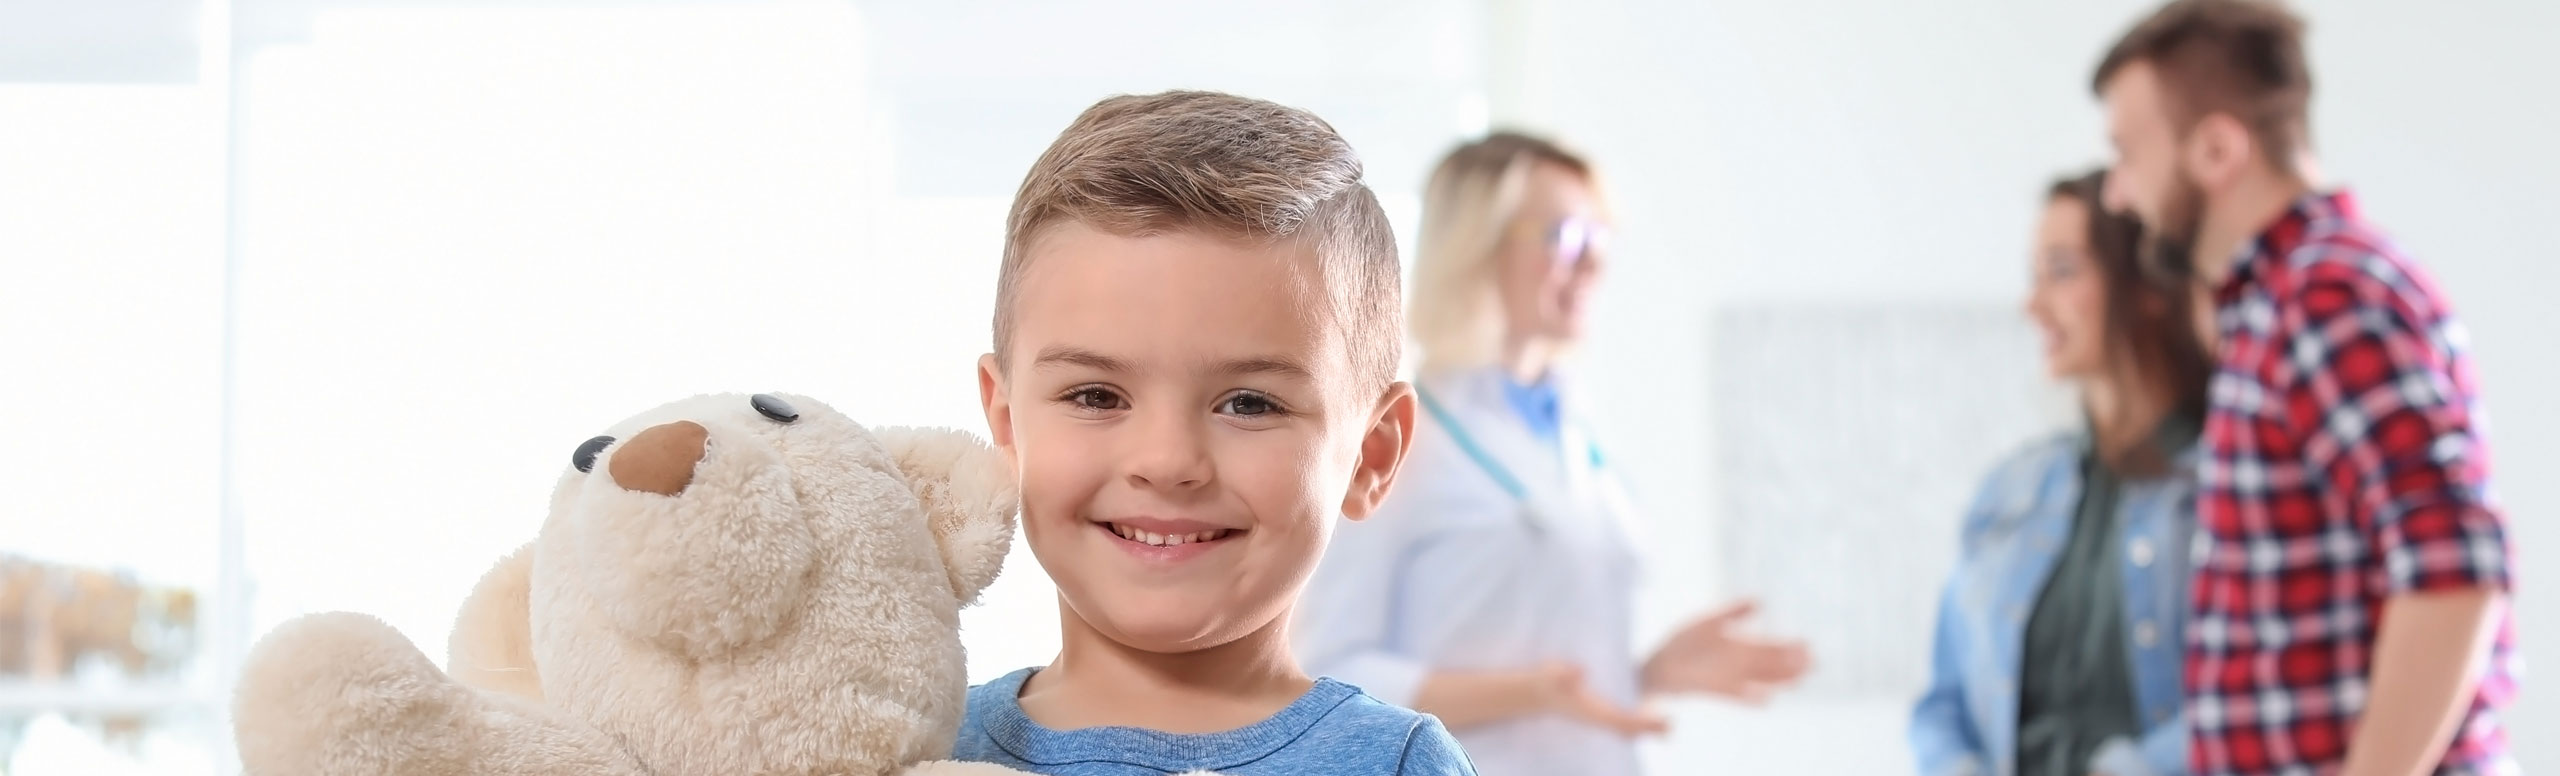 A child holding a teddy bear, with doctor talking to a parent in the background.